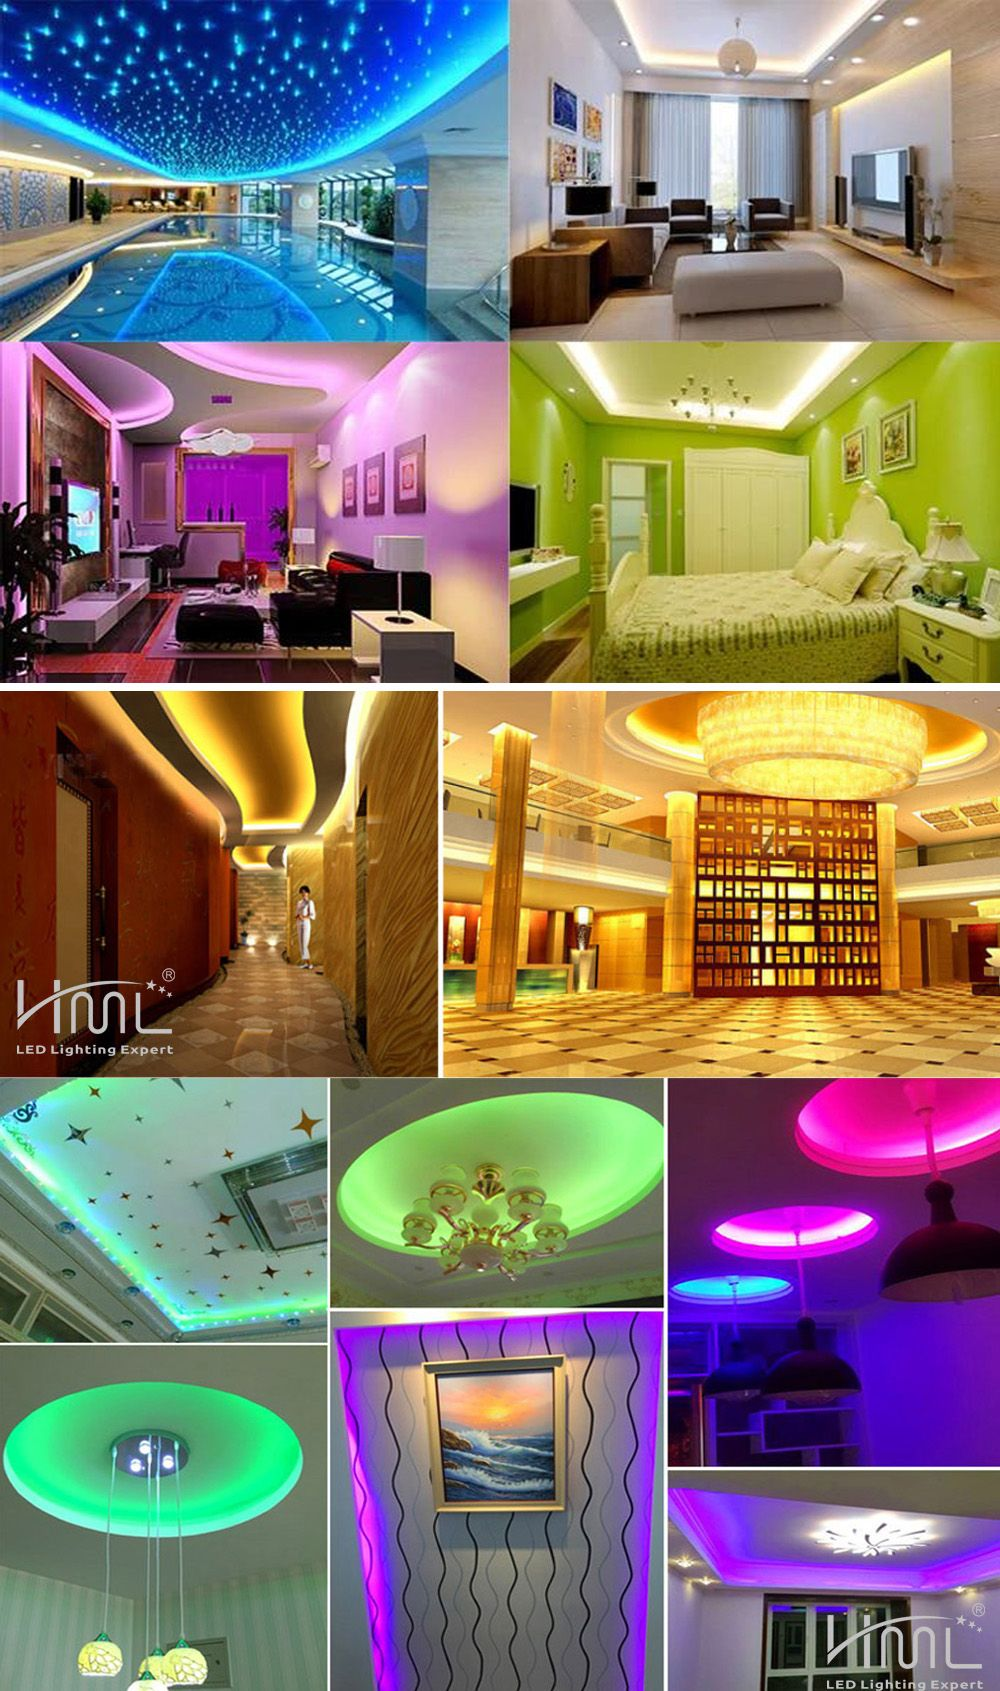 HML LED Strip Light 5M 24W RGB SMD2835 300 LEDs - with IR 20 Keys Music Remote Control and EU Adapter